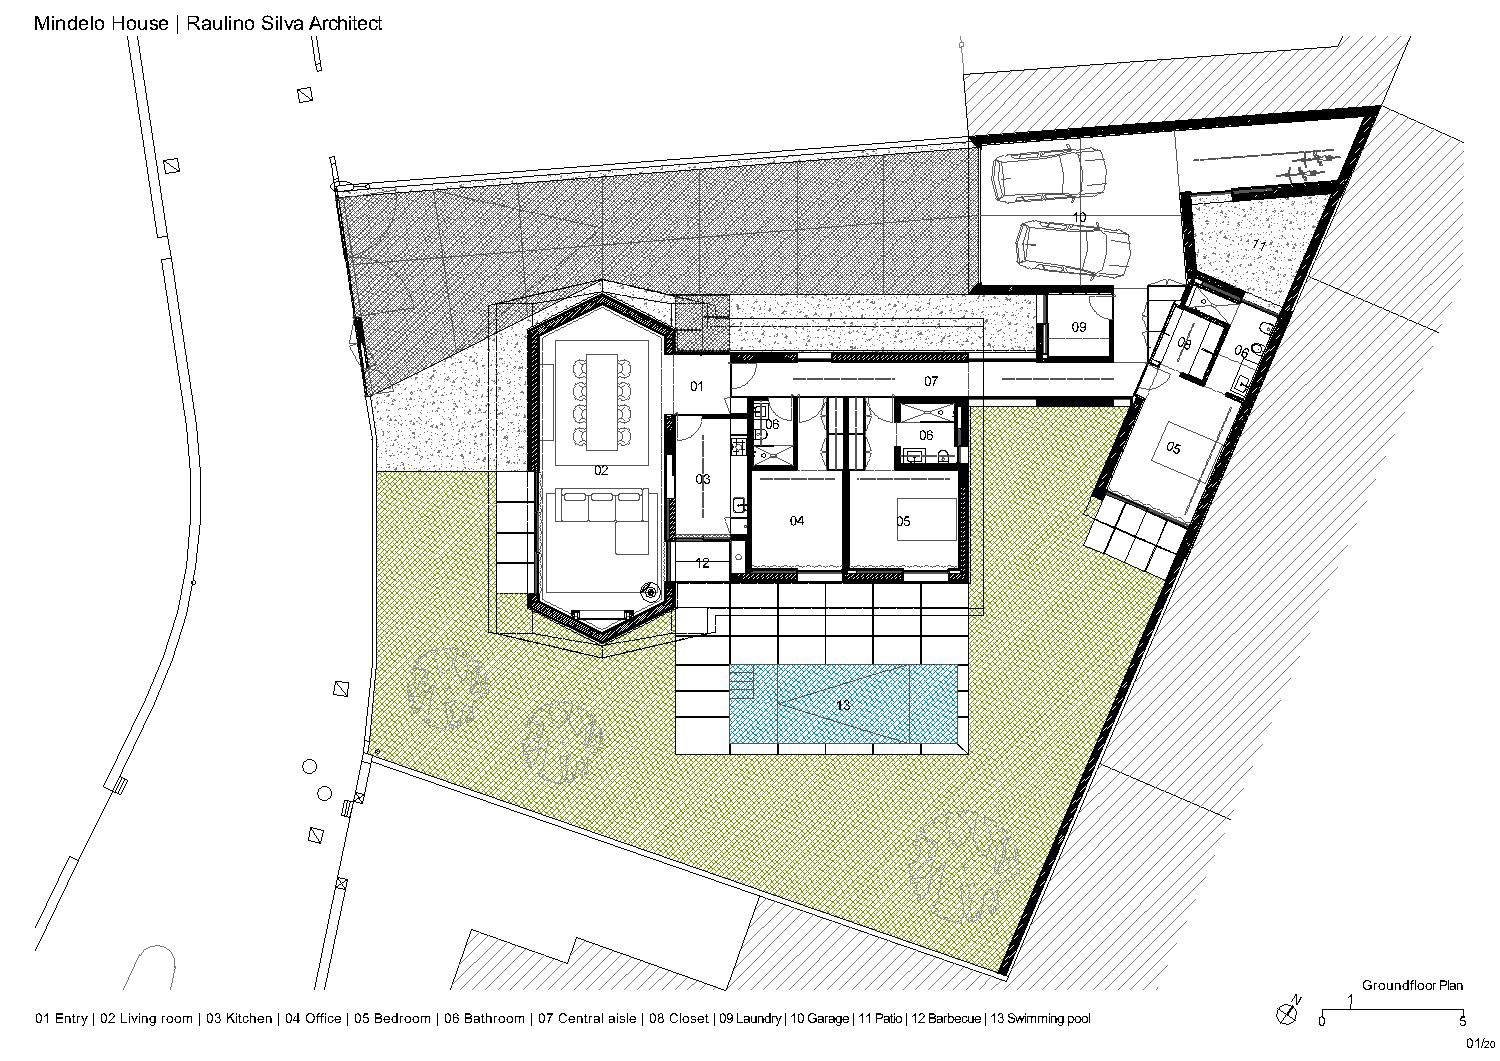 Groundfloor plan Raulino Silva Architect}